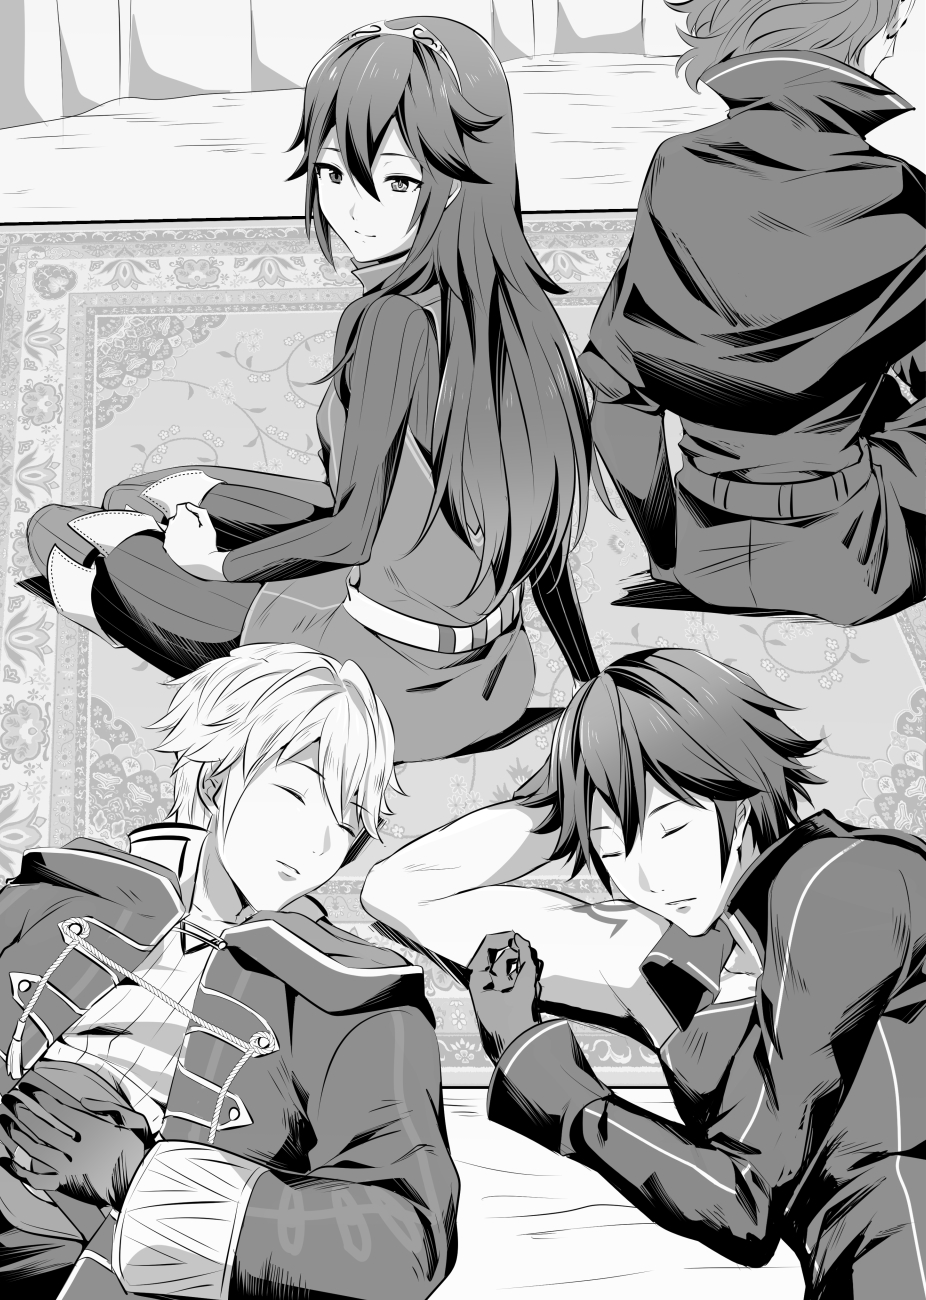 1girl 3boys ameno_(a_meno0) bare_arms chrom_(fire_emblem) fire_emblem fire_emblem_awakening gloves hair_between_eyes highres long_hair lucina_(fire_emblem) lying monochrome multiple_boys on_back robin_(fire_emblem) robin_(fire_emblem)_(male) sitting sleeping smile symbol-shaped_pupils tiara